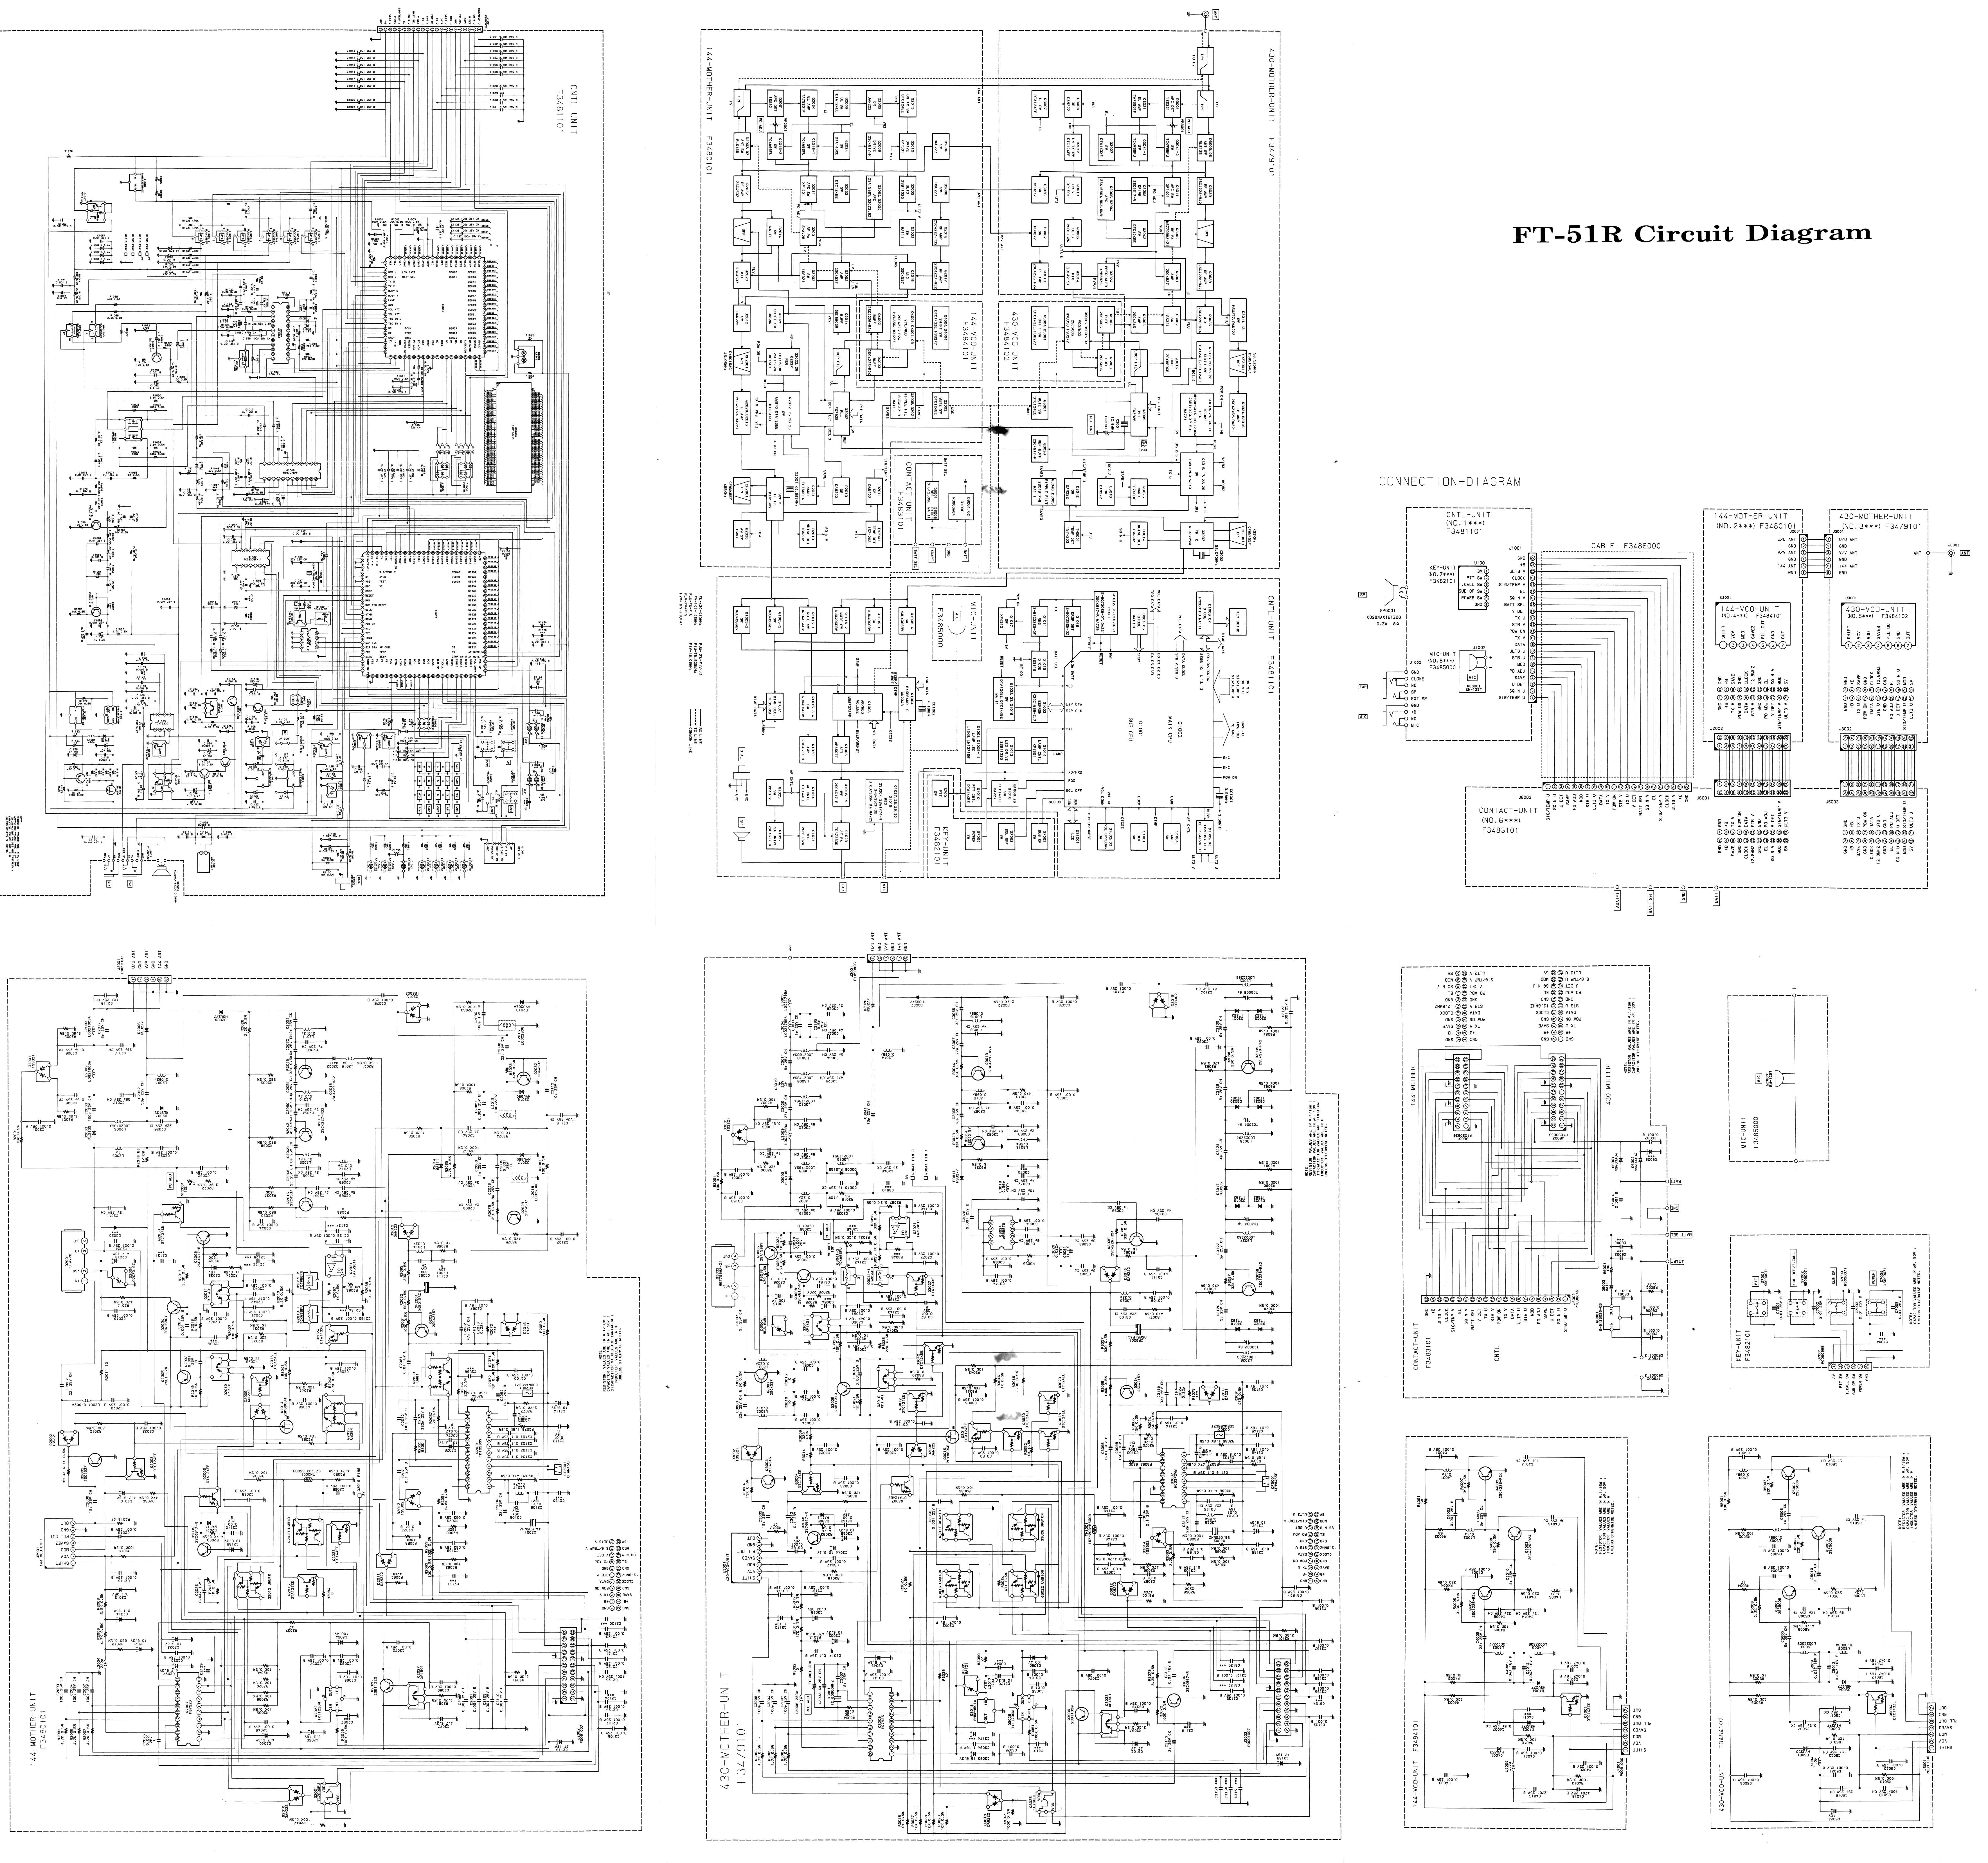 Rigpix Database - Schematics, Manuals 'n' Stuff - Cat 70 Pin Ecm Wiring Diagram